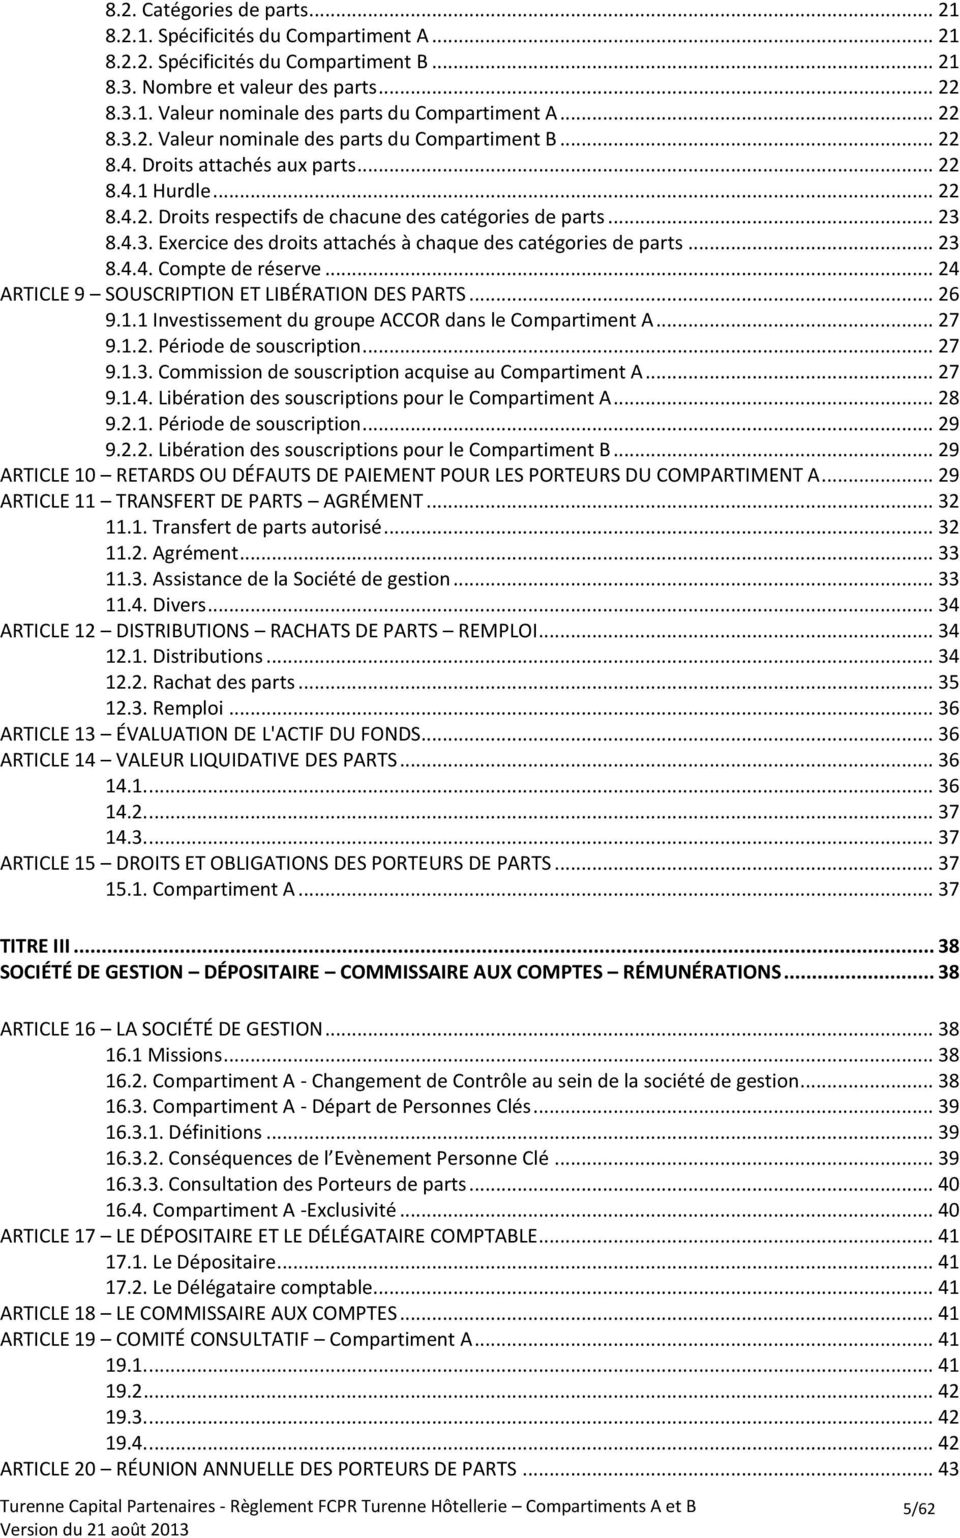 .. 23 8.4.4. Compte de réserve... 24 ARTICLE 9 SOUSCRIPTION ET LIBÉRATION DES PARTS... 26 9.1.1 Investissement du groupe ACCOR dans le Compartiment A... 27 9.1.2. Période de souscription... 27 9.1.3. Commission de souscription acquise au Compartiment A.